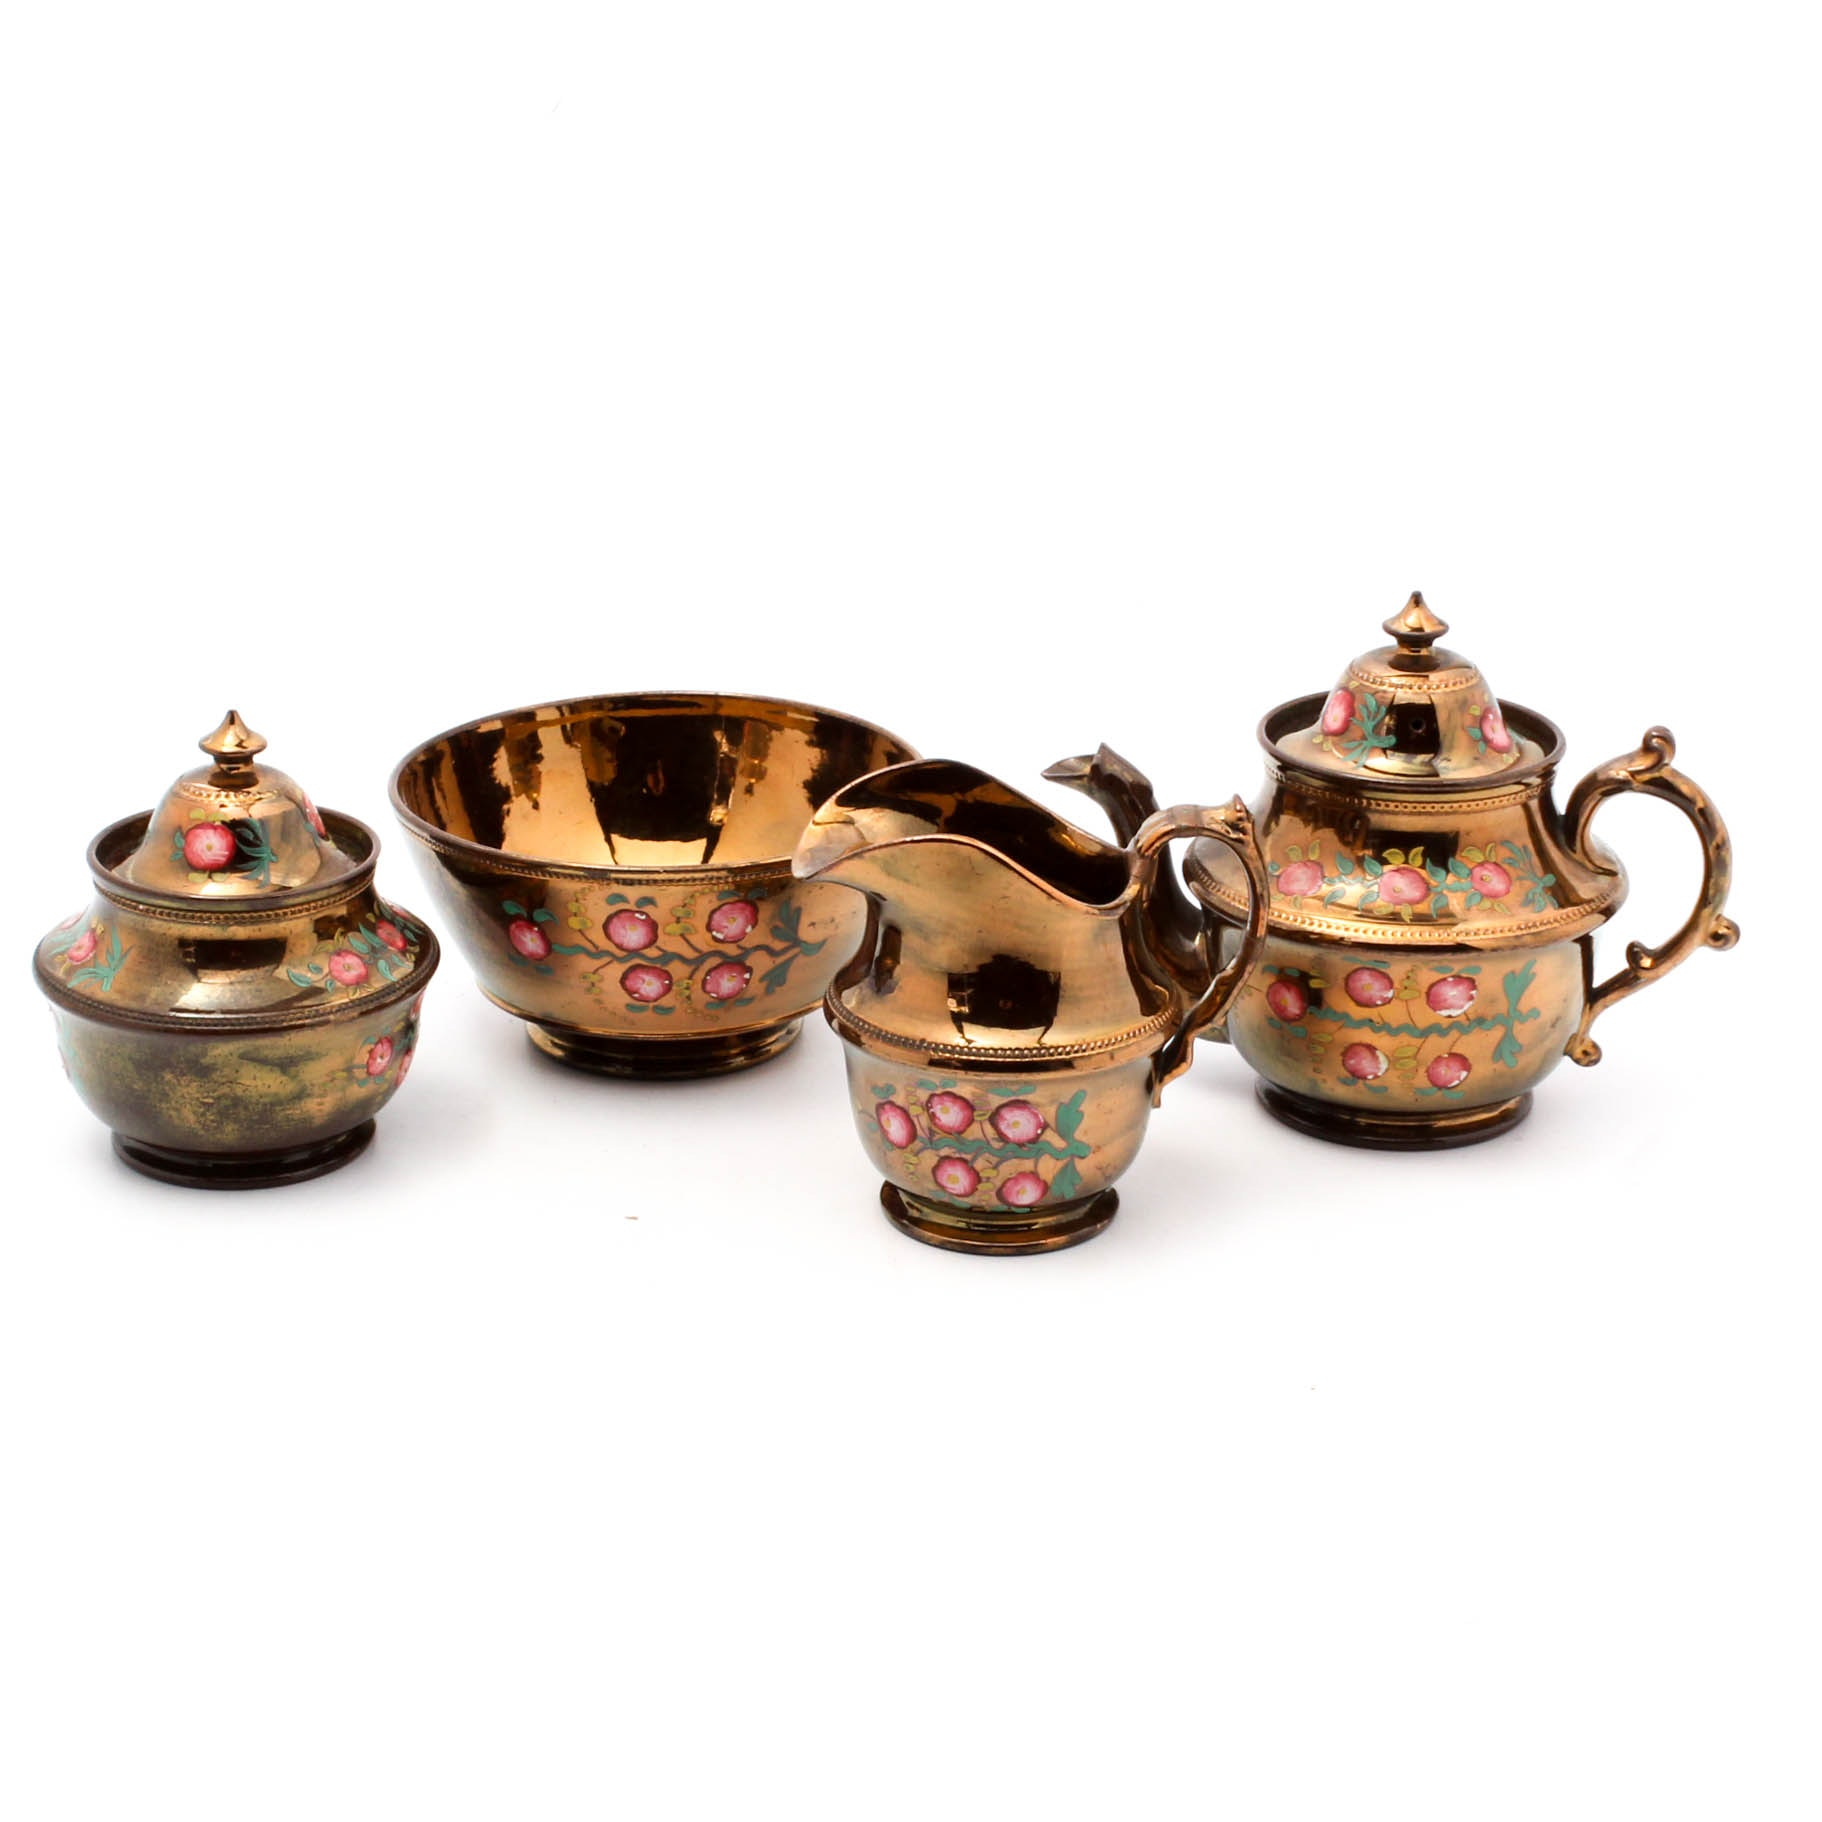 Hand-Painted Copper Luster Ceramic Tea Set with Bowl